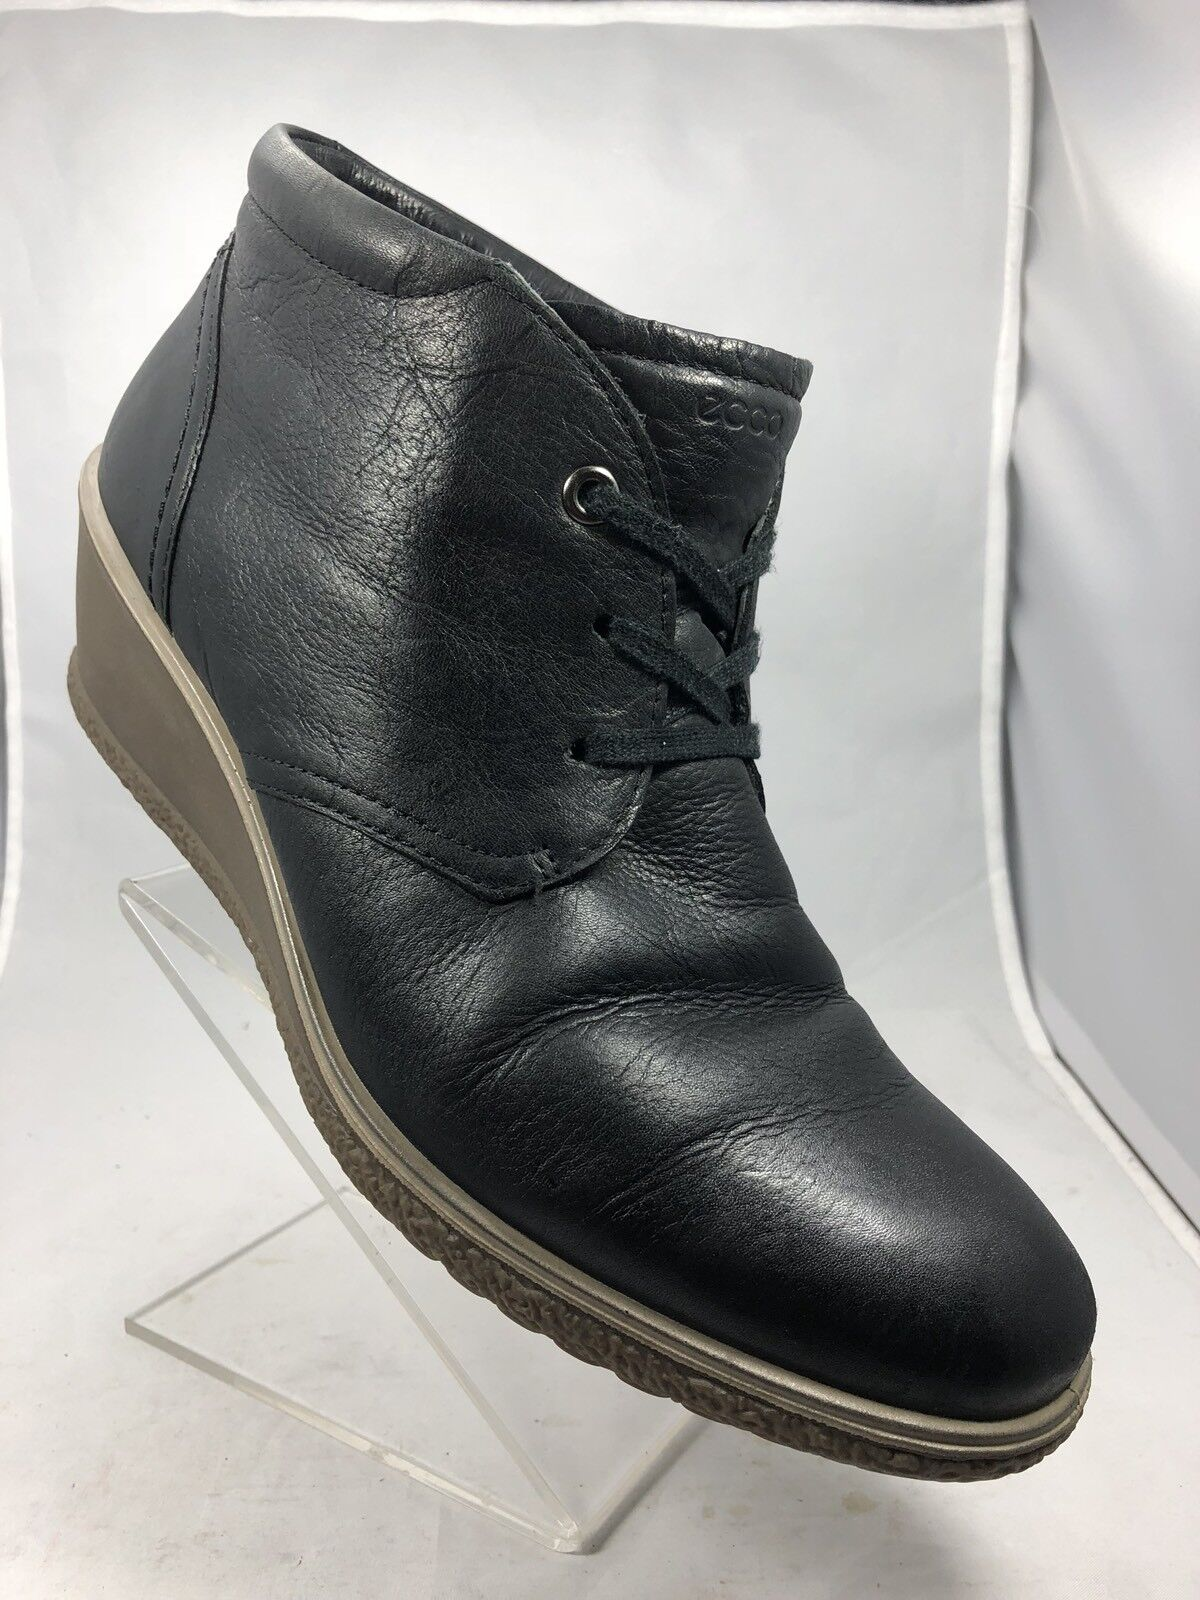 ECCO Wedge Soft Leather Lace Up Plain Toe Navy bluee Causal shoes Ankle Boots